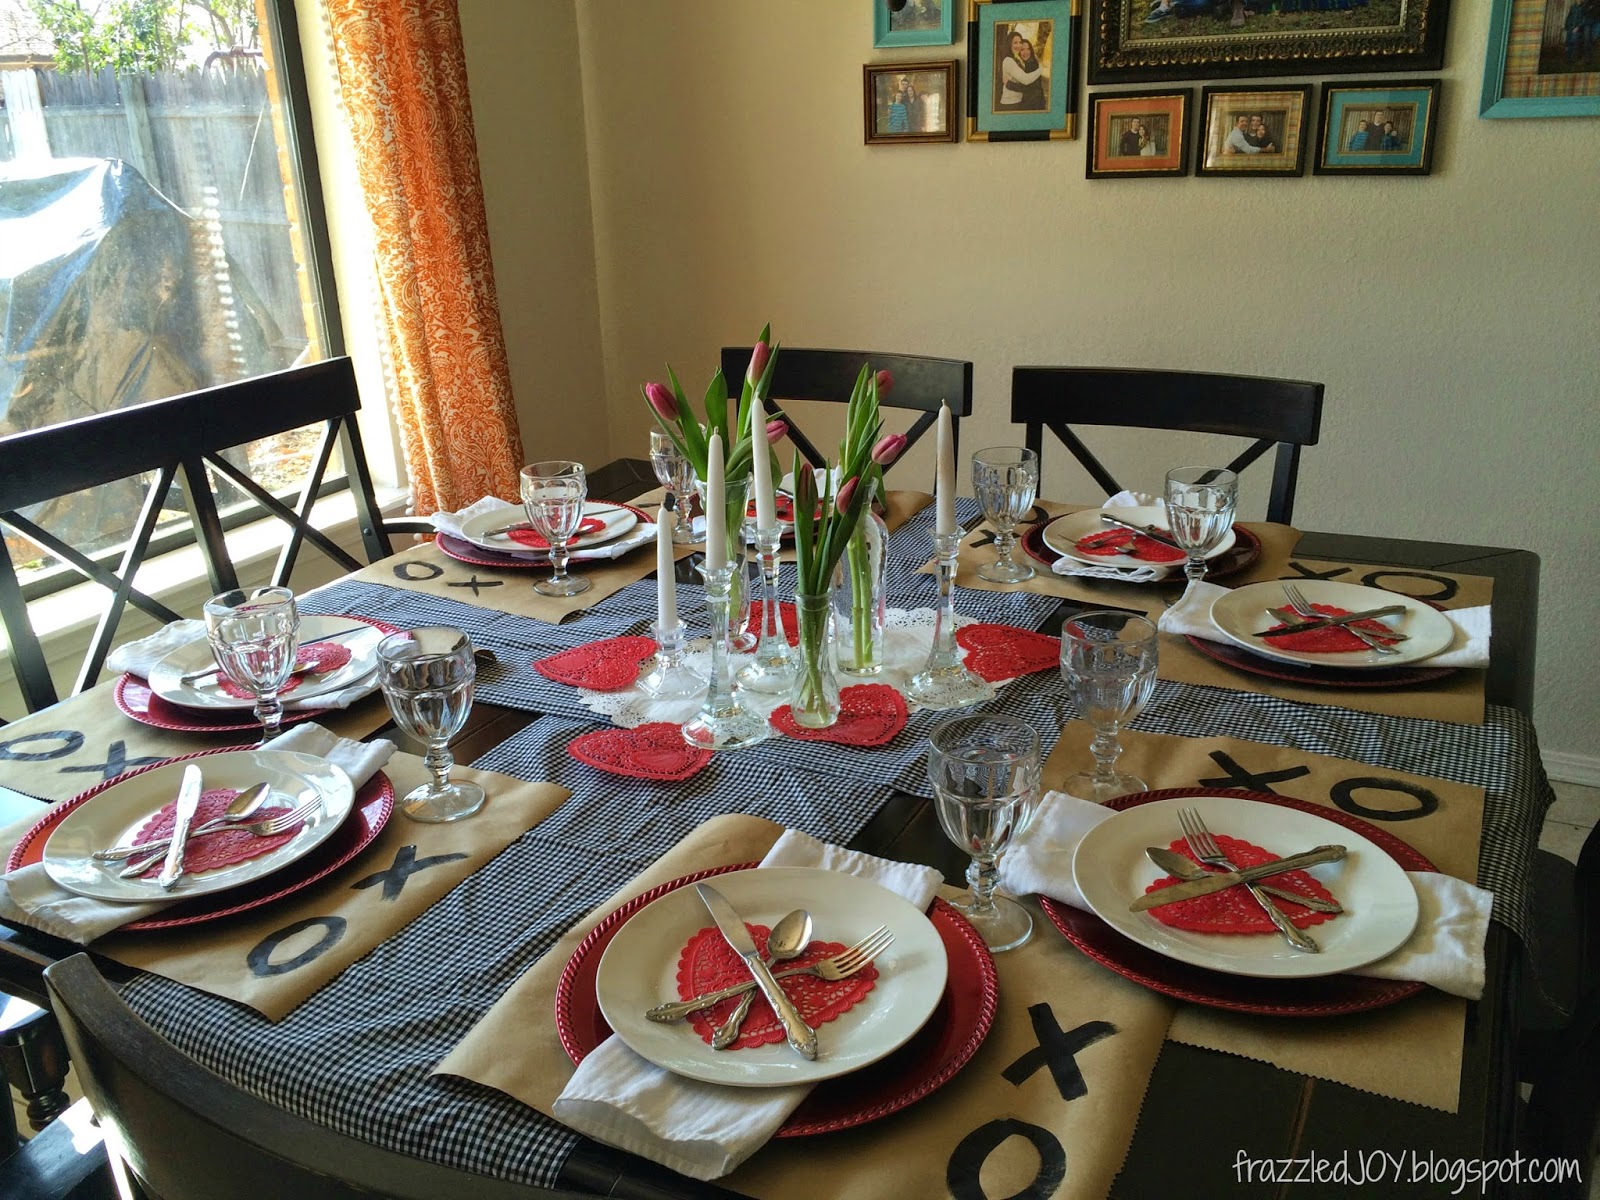 Placemats for dining